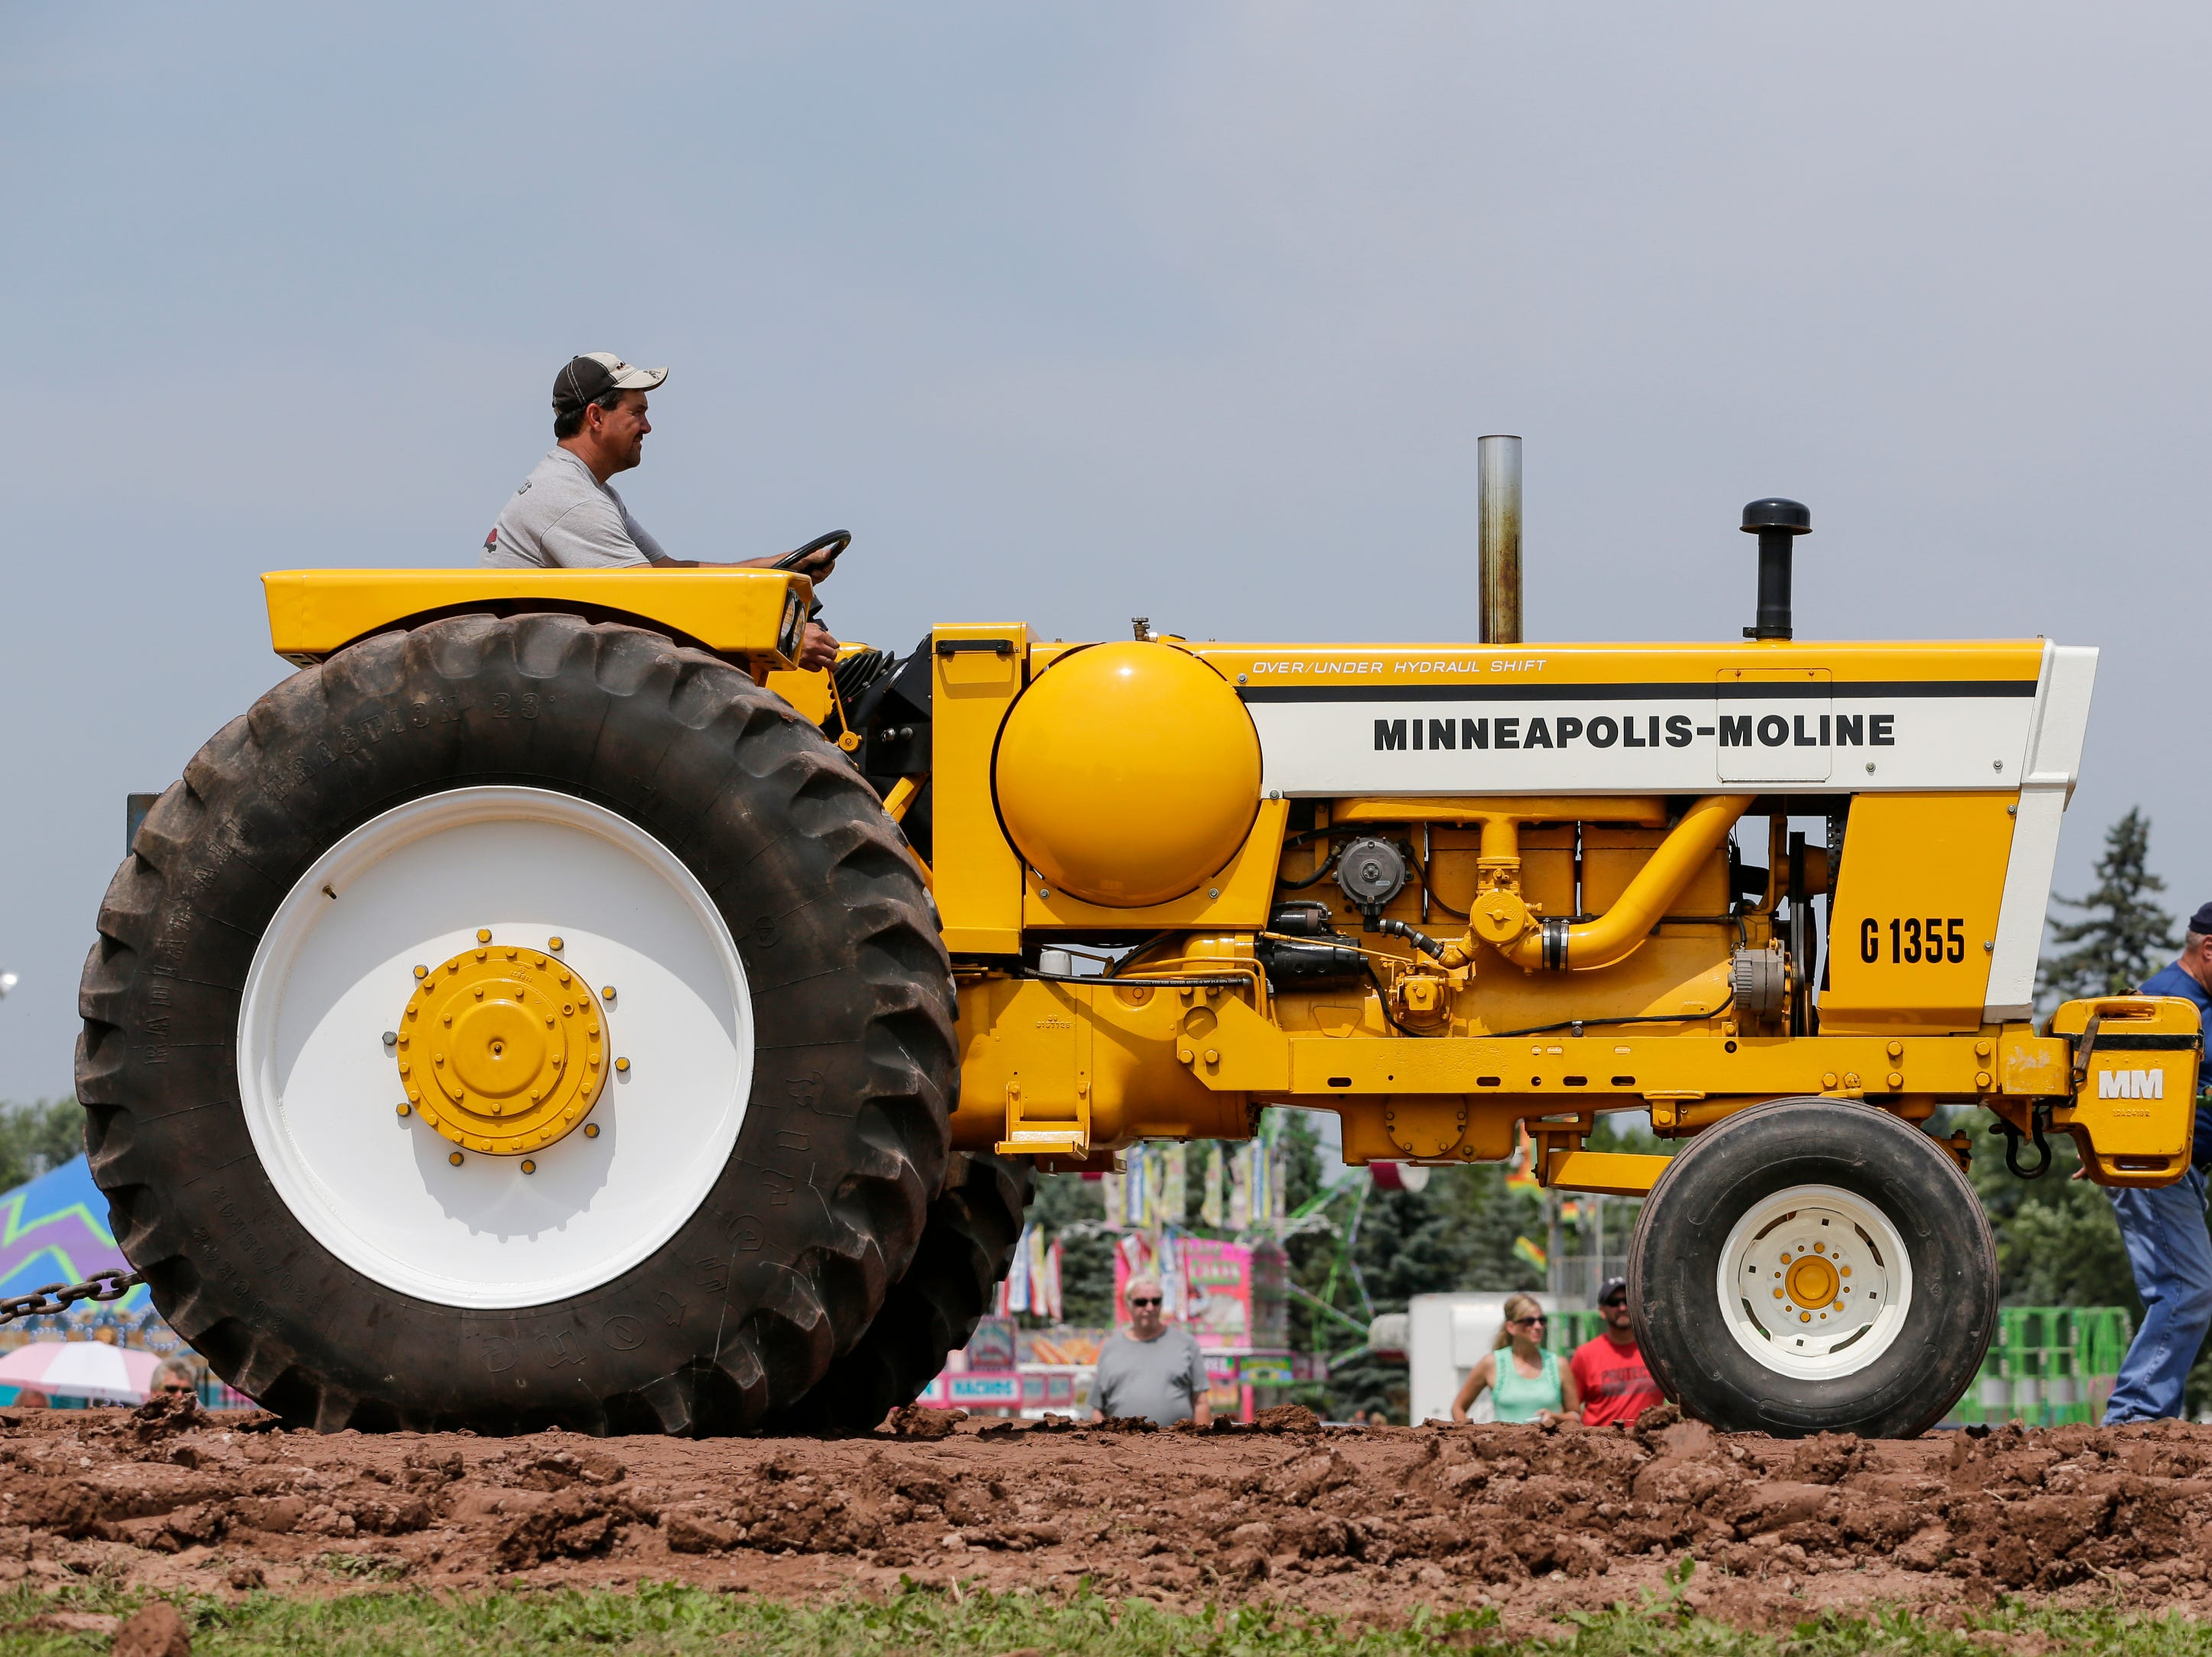 Randy Walecka of Kewaunee takes his Minneapolis-Moline down the tractor pull course during Mishicot Riverfest Saturday, August 4, 2018, in Mishicot, Wis. Josh Clark/USA TODAY NETWORK-Wisconsin